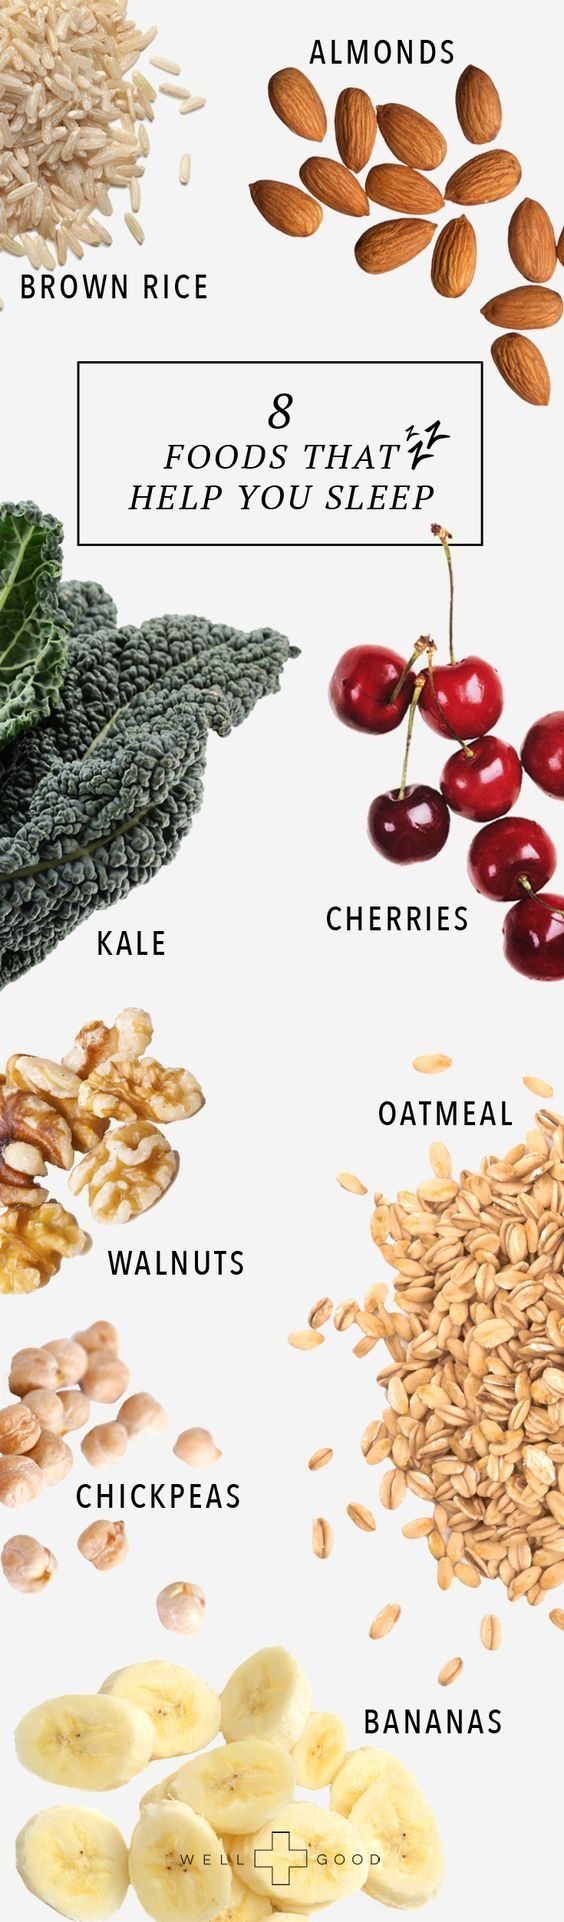 If you need help getting better sleep, try incorporating a few of these foods into your diet.